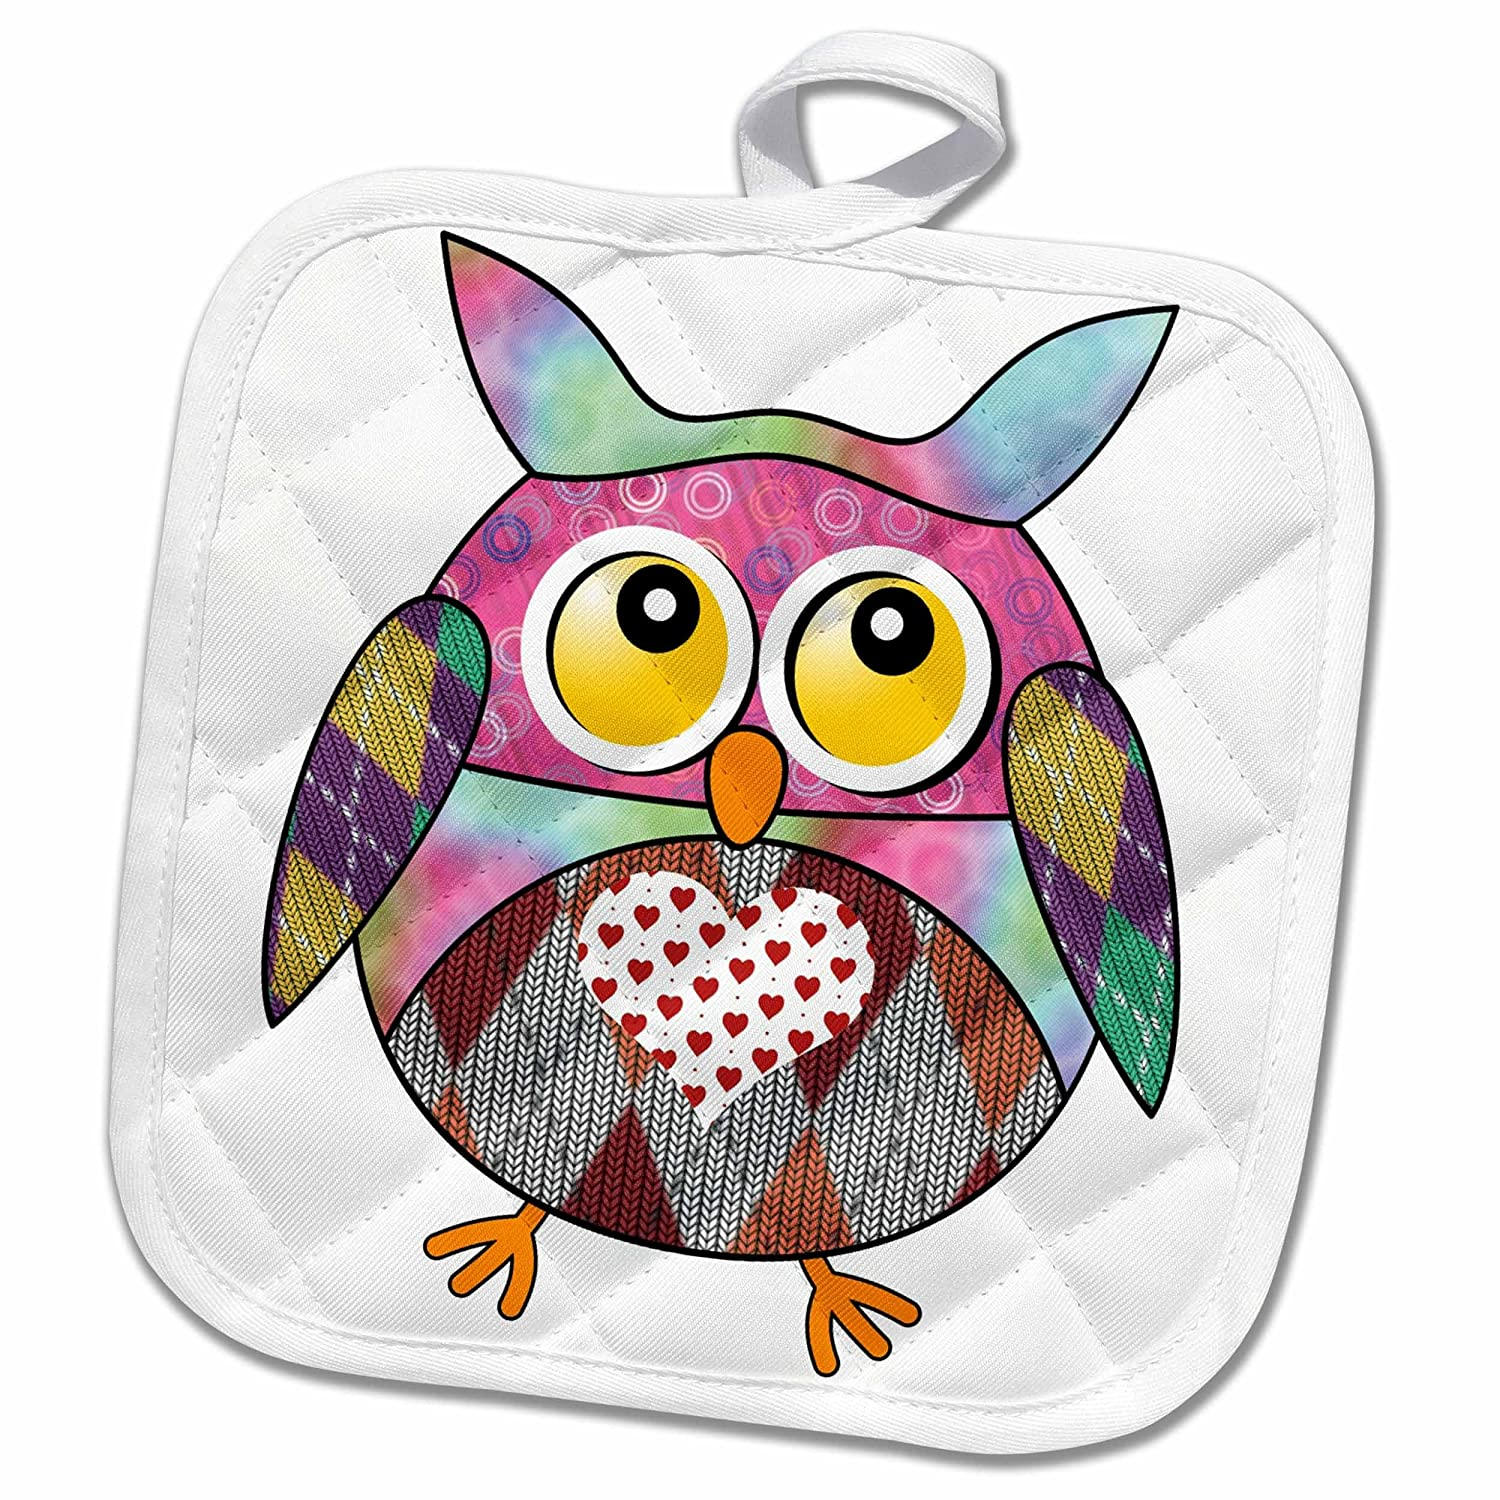 3D Rose Cute Little Owl with Heart On Chest Pot Holder 8 x 8